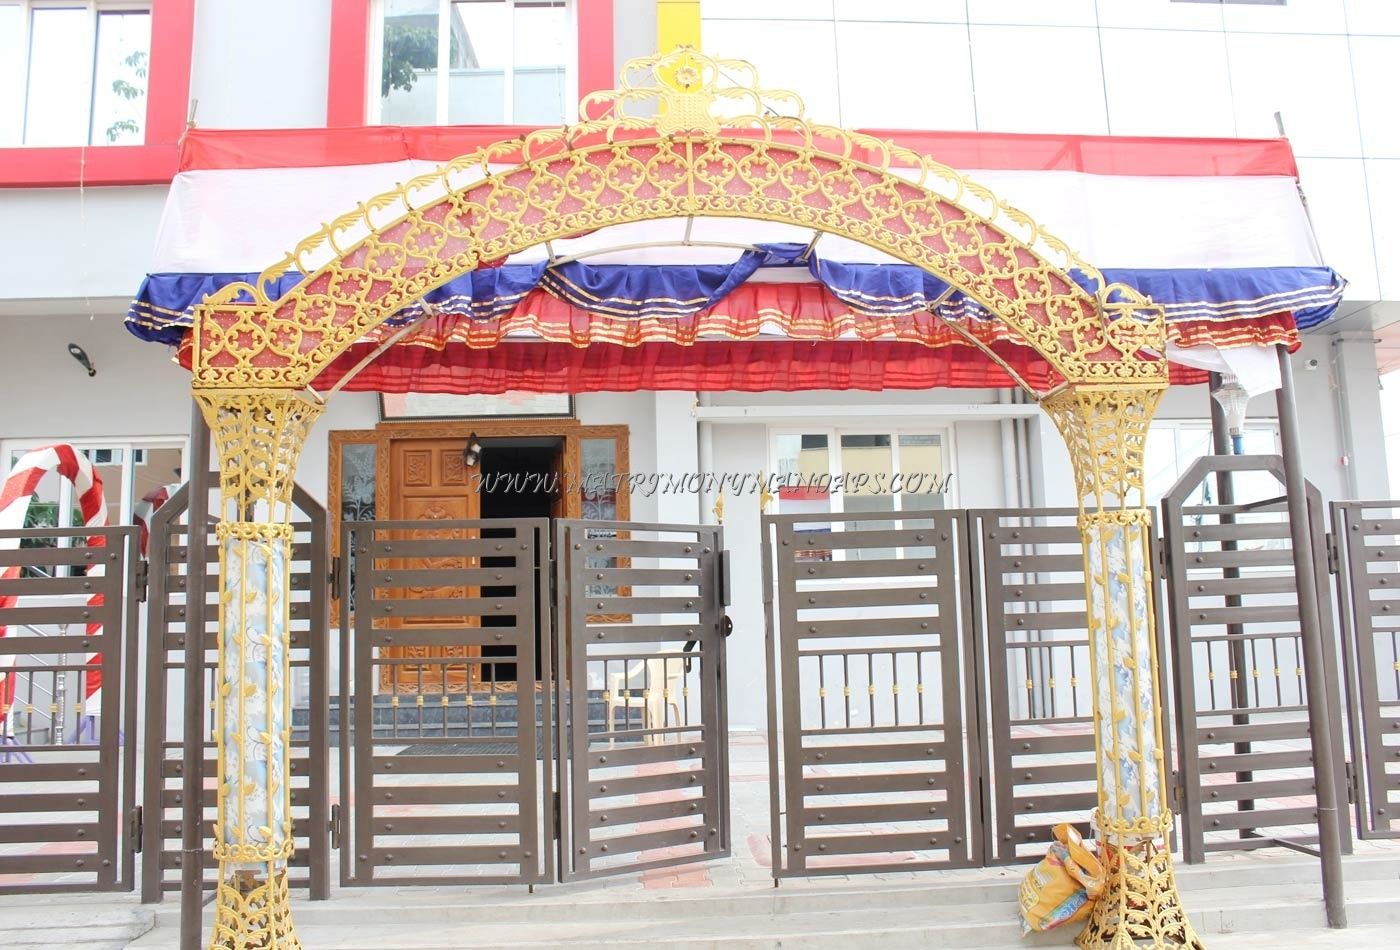 Find the availability of the Palani Thirumana Mandapam (A/C) in Selaiyur, Chennai and avail special offers